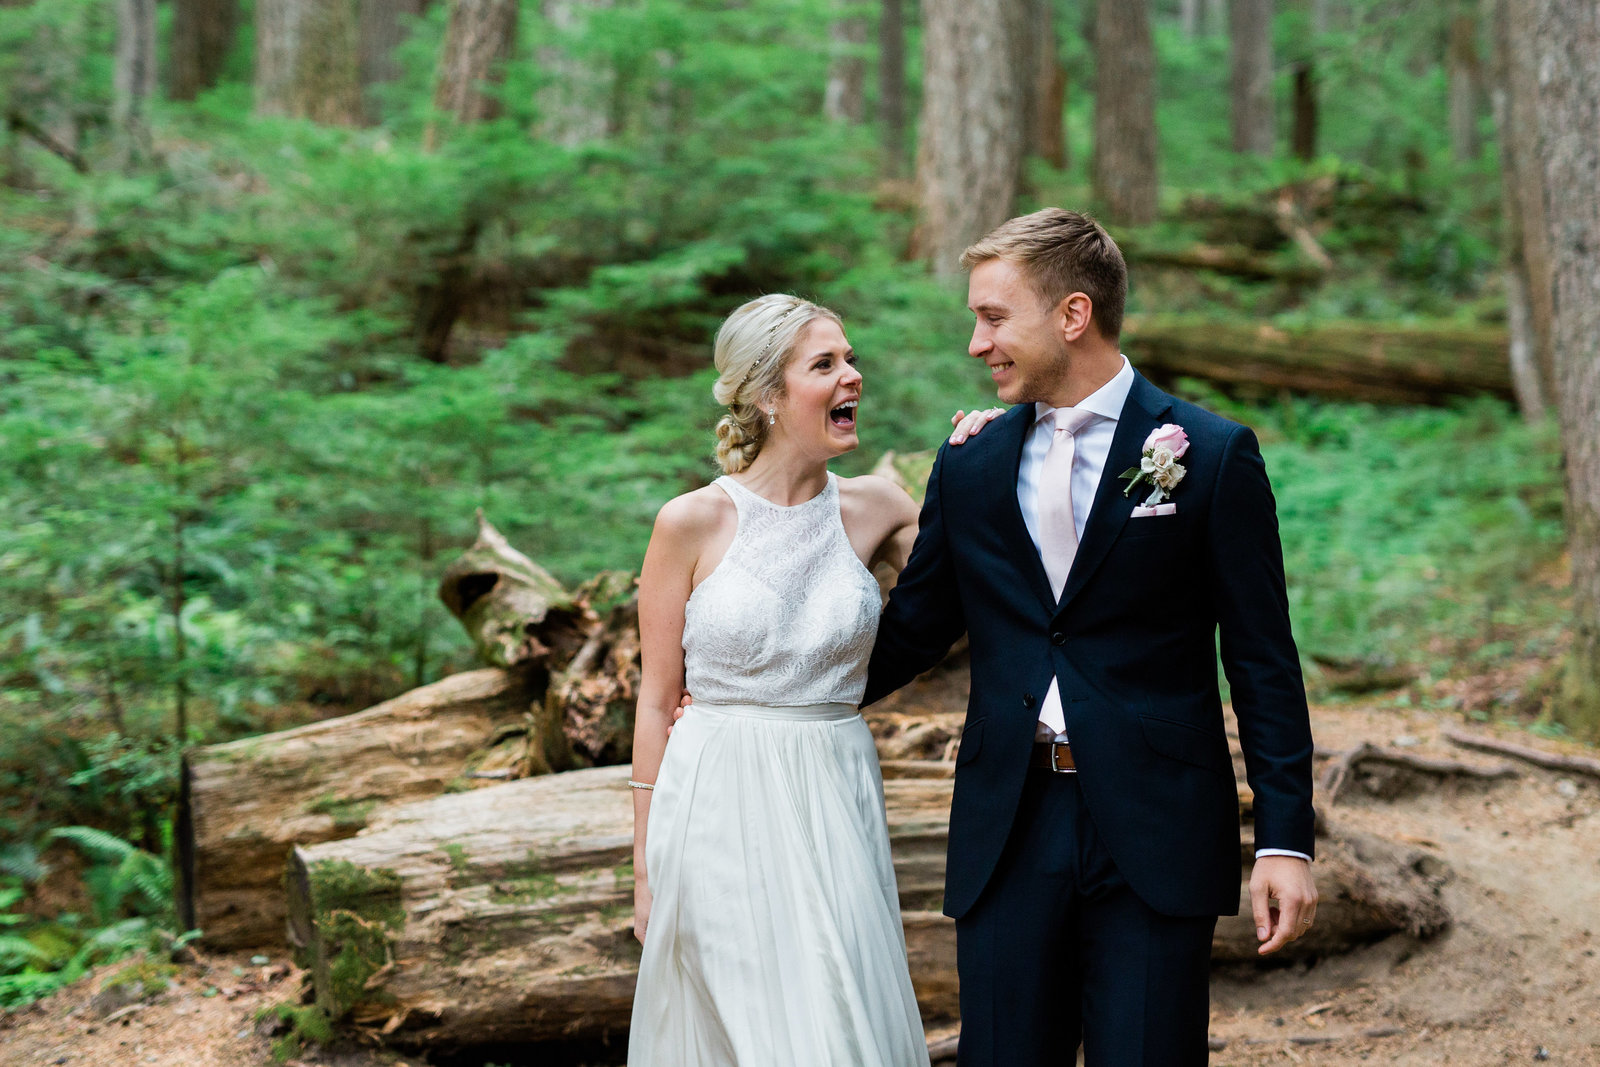 mount-rainier-national-park-elopement-cameron-zegers-photographer-seattle-98